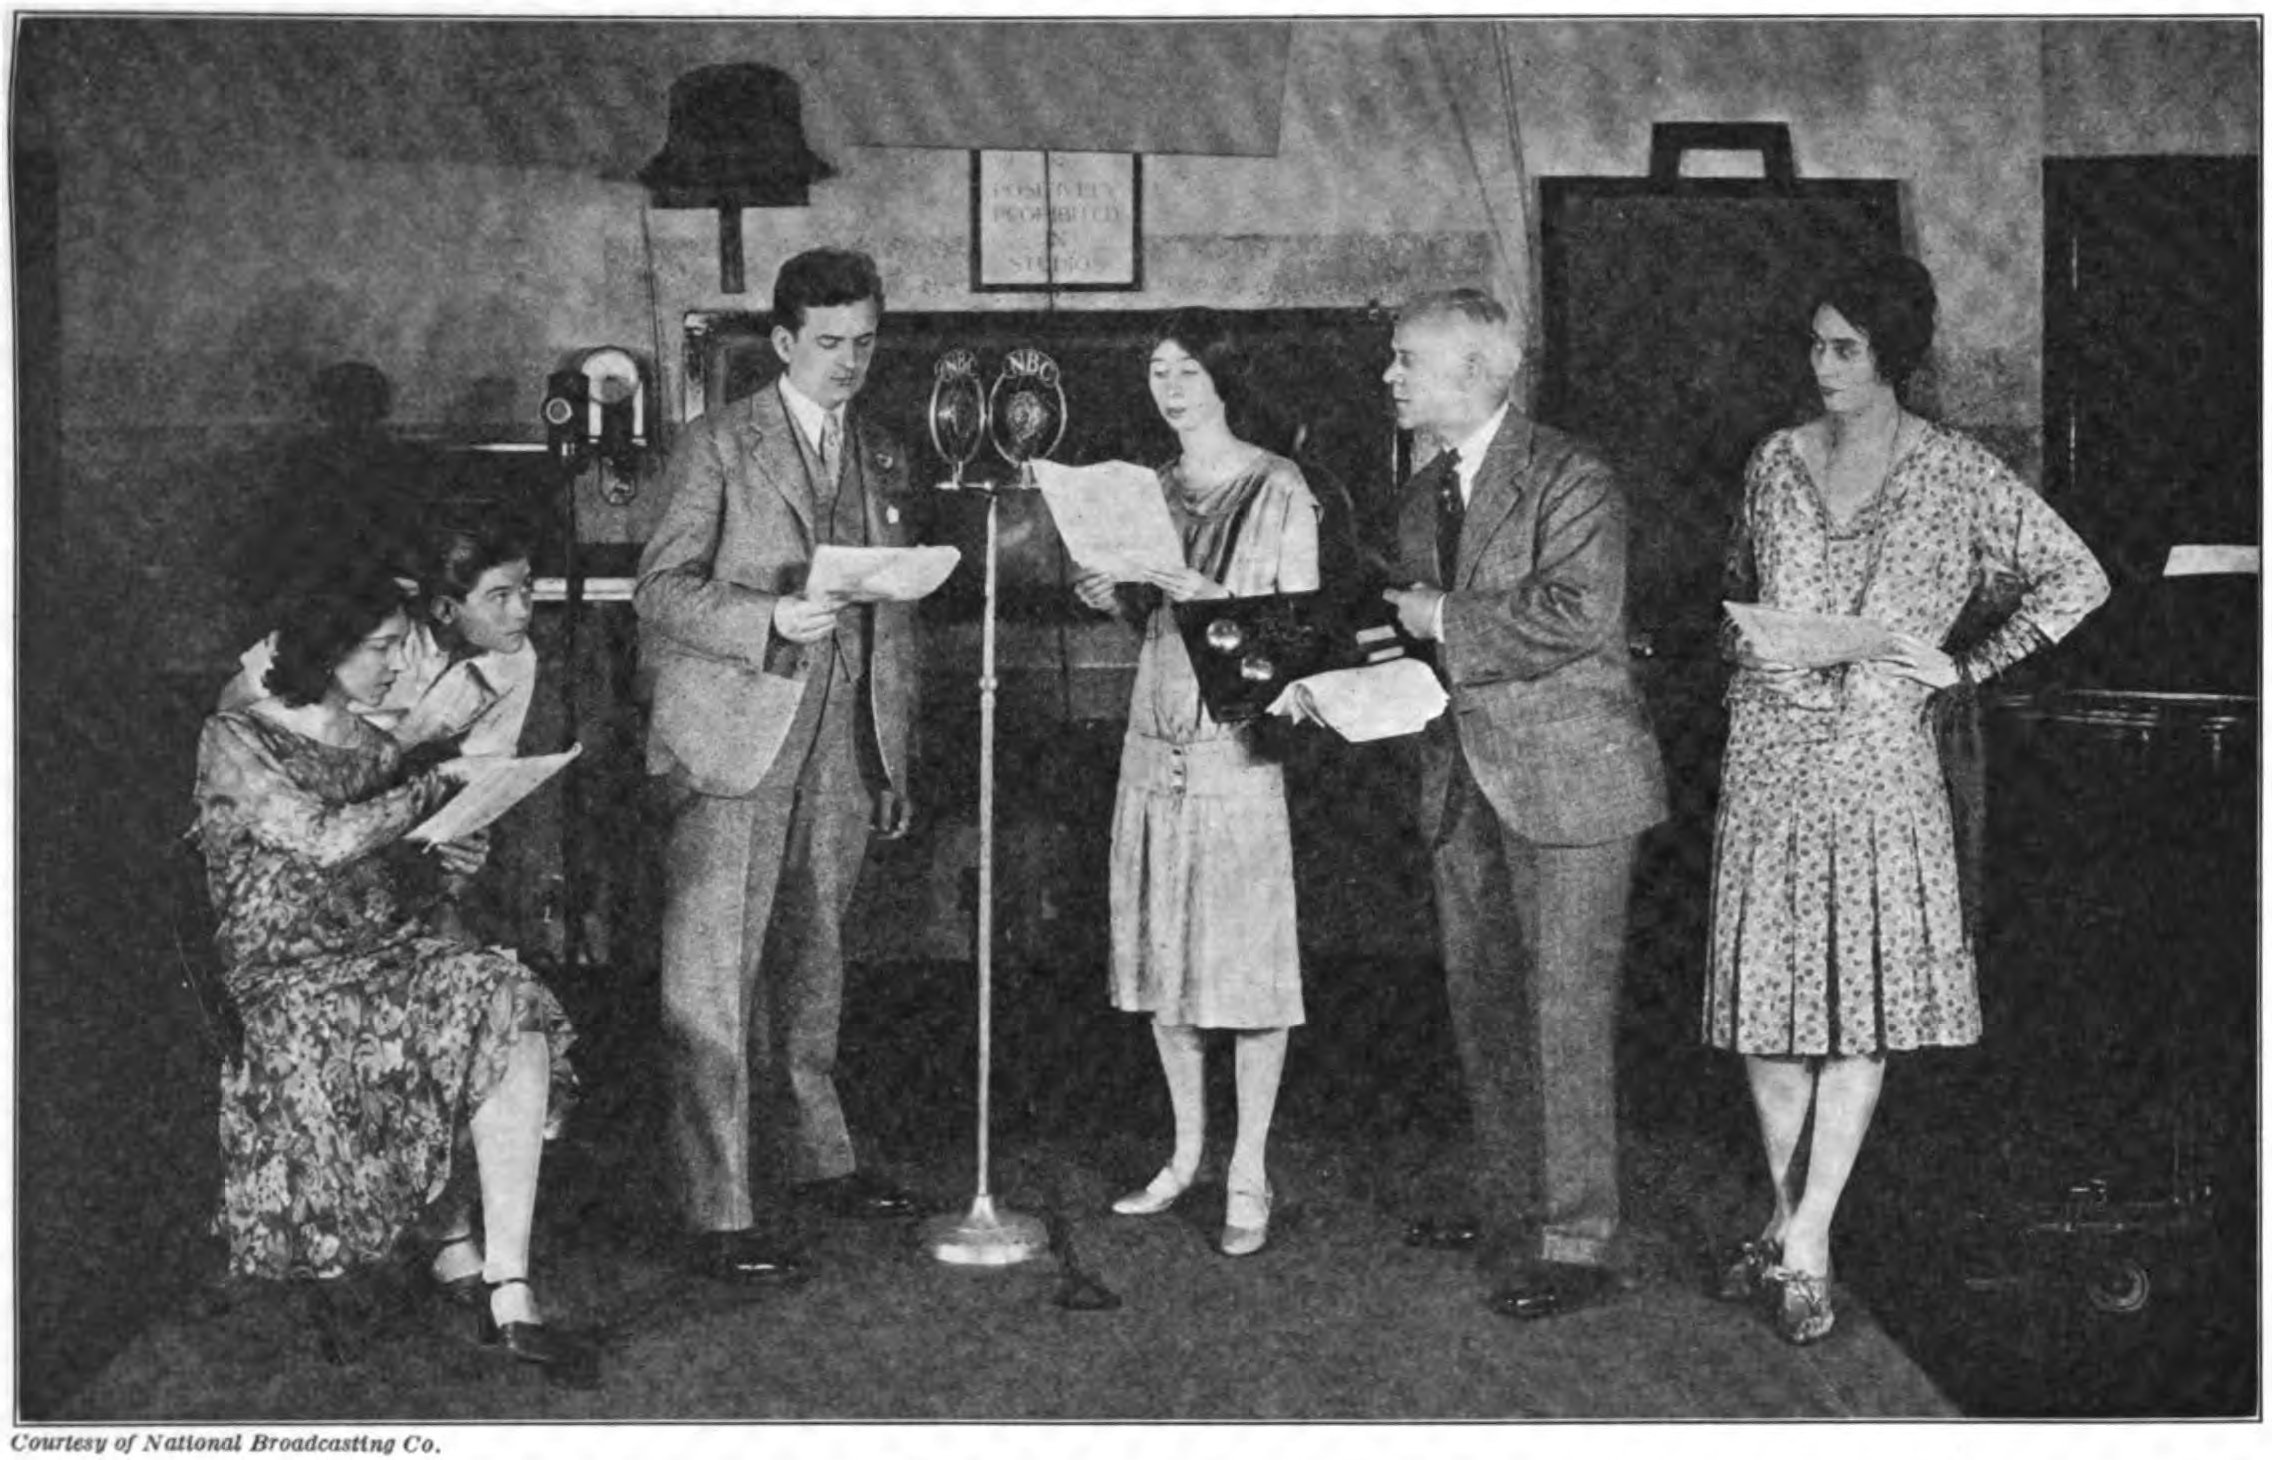 A live radio play being broadcast at NBC studios in New York. Since recording technology was primitive and costly during the 20s, most programs were broadcast live.